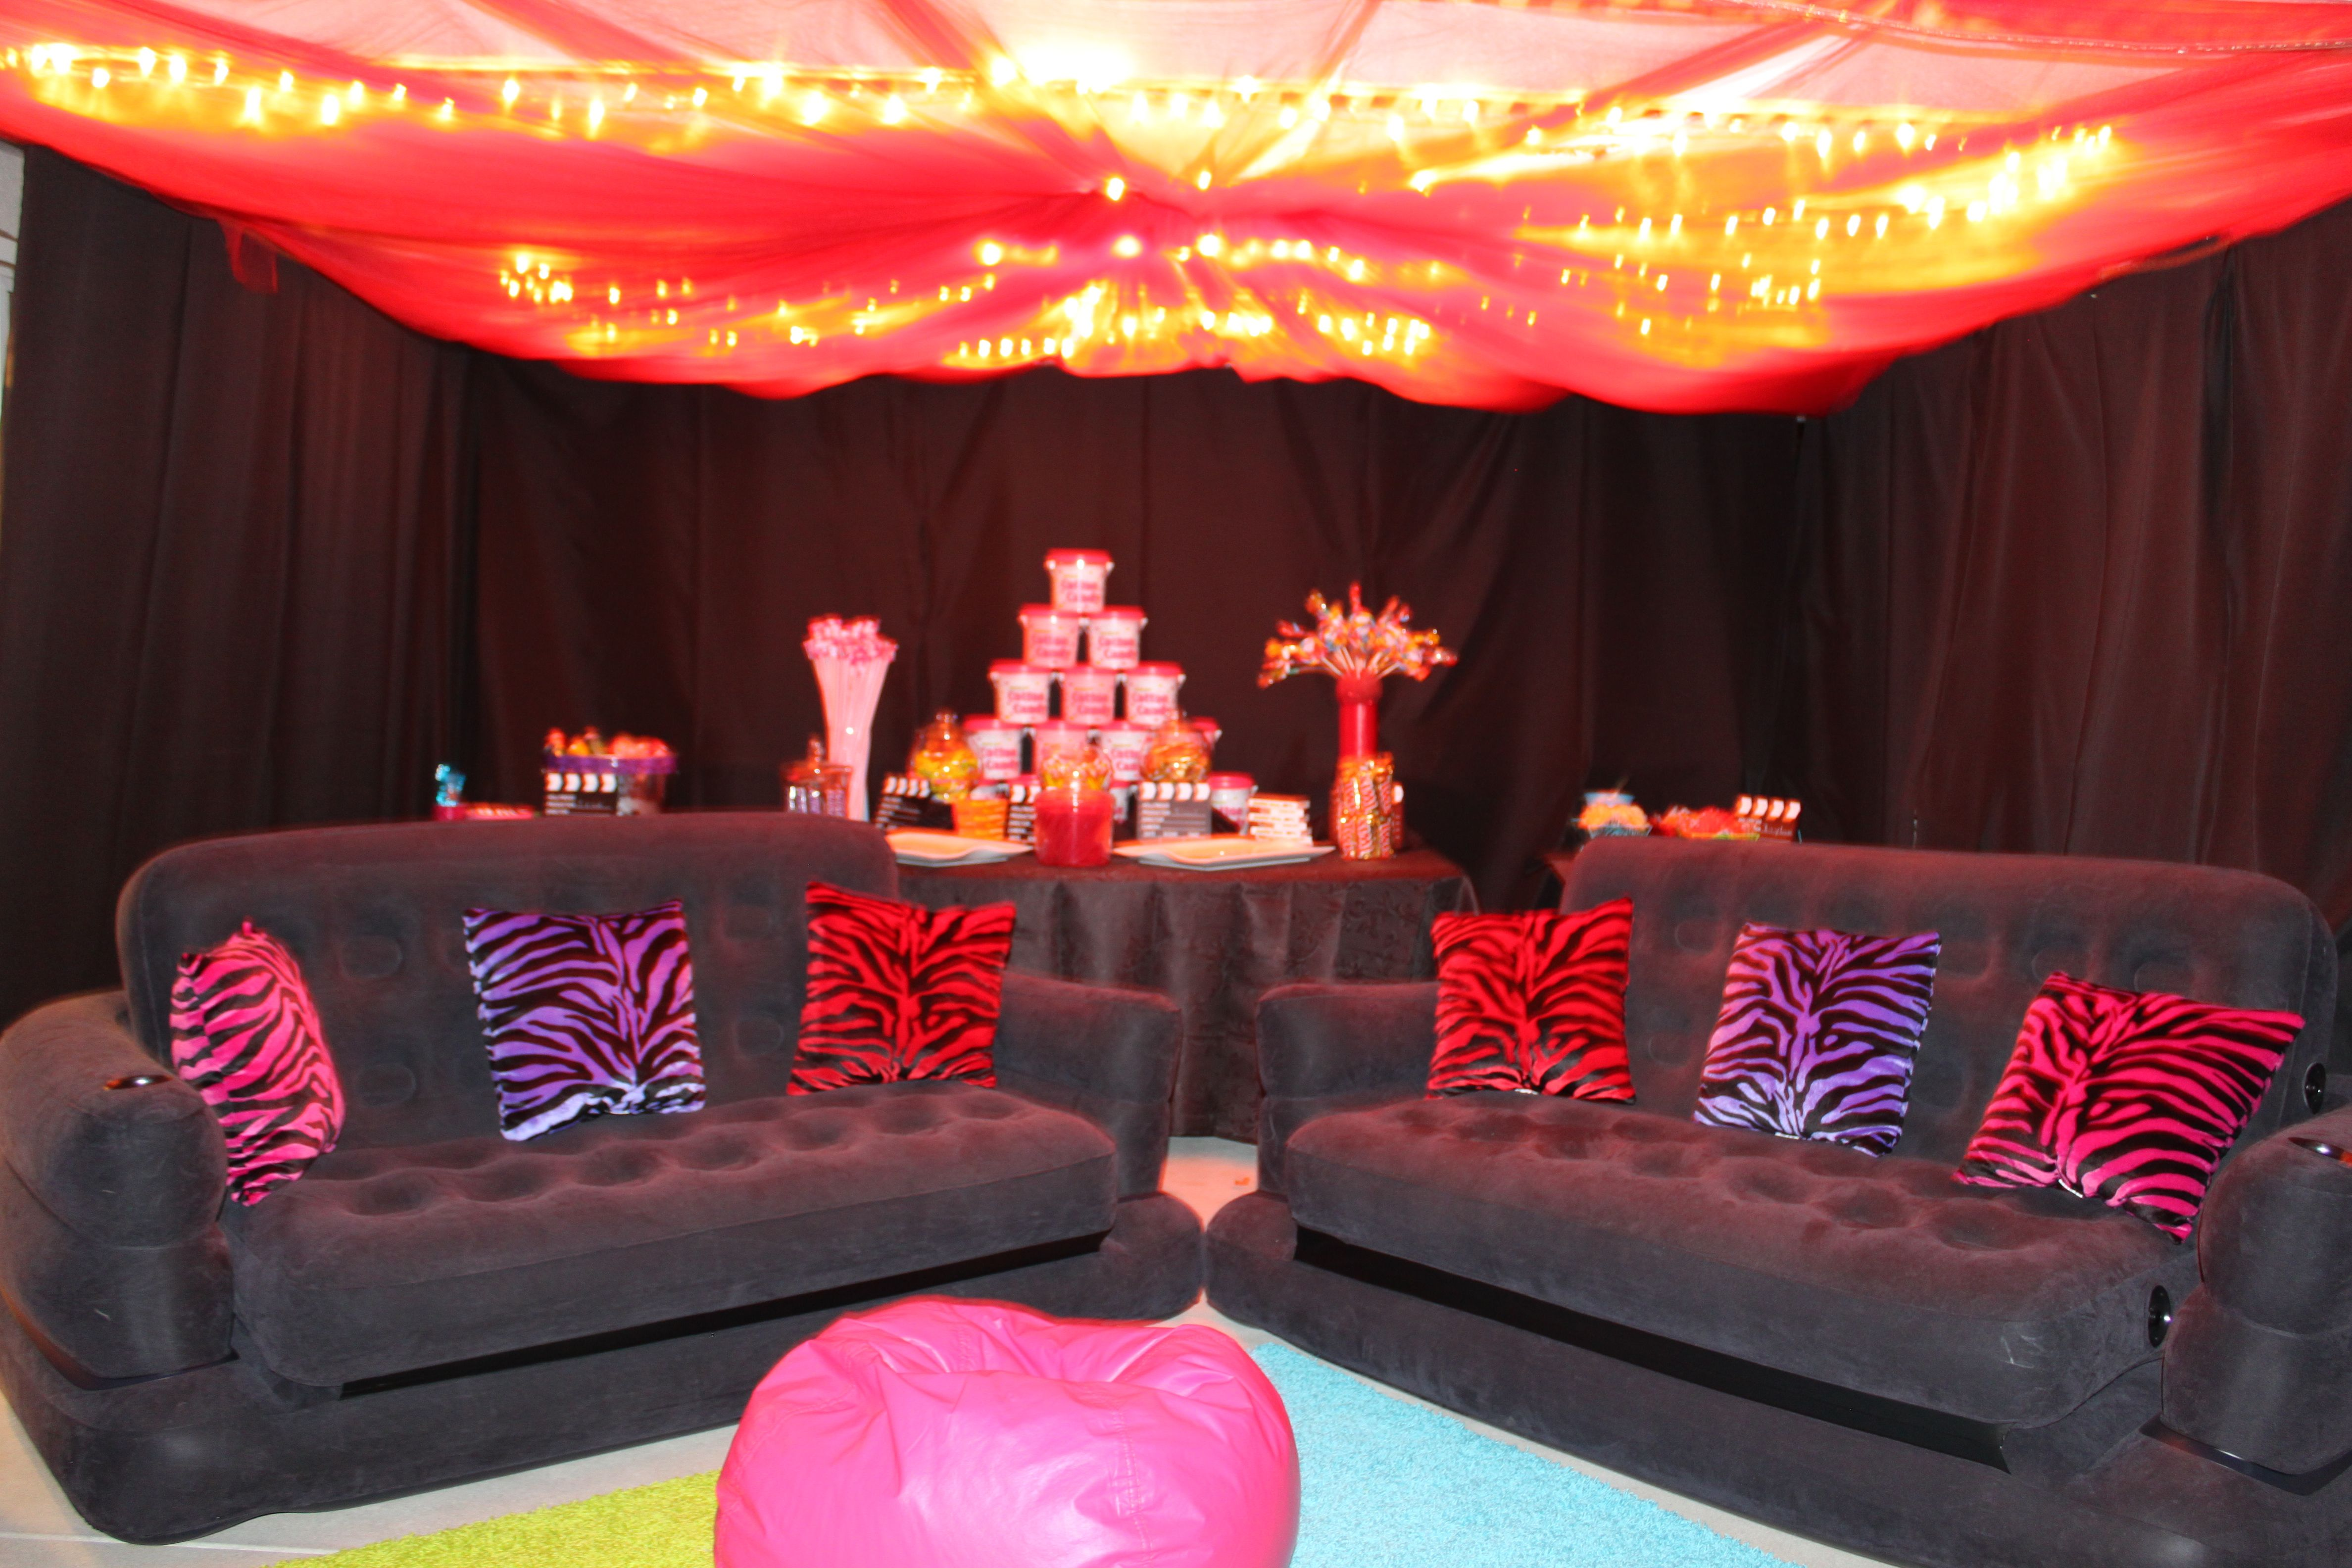 Pin By Julie Crouch On Hair Sleepover Birthday Parties Spa Birthday Parties Candy Bar Party